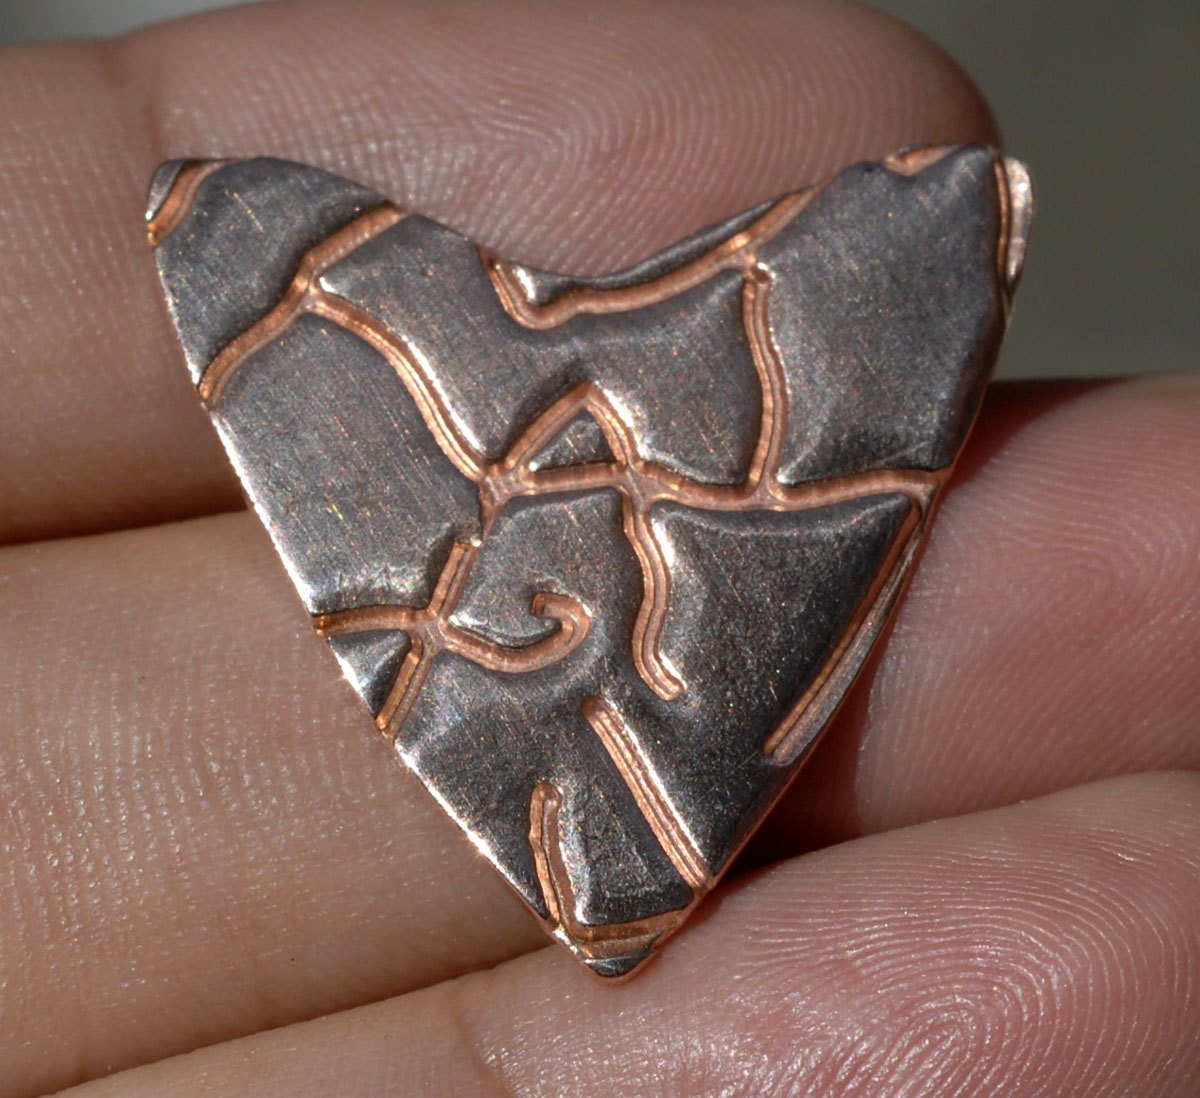 26mm x 25mm Heart in root pattern